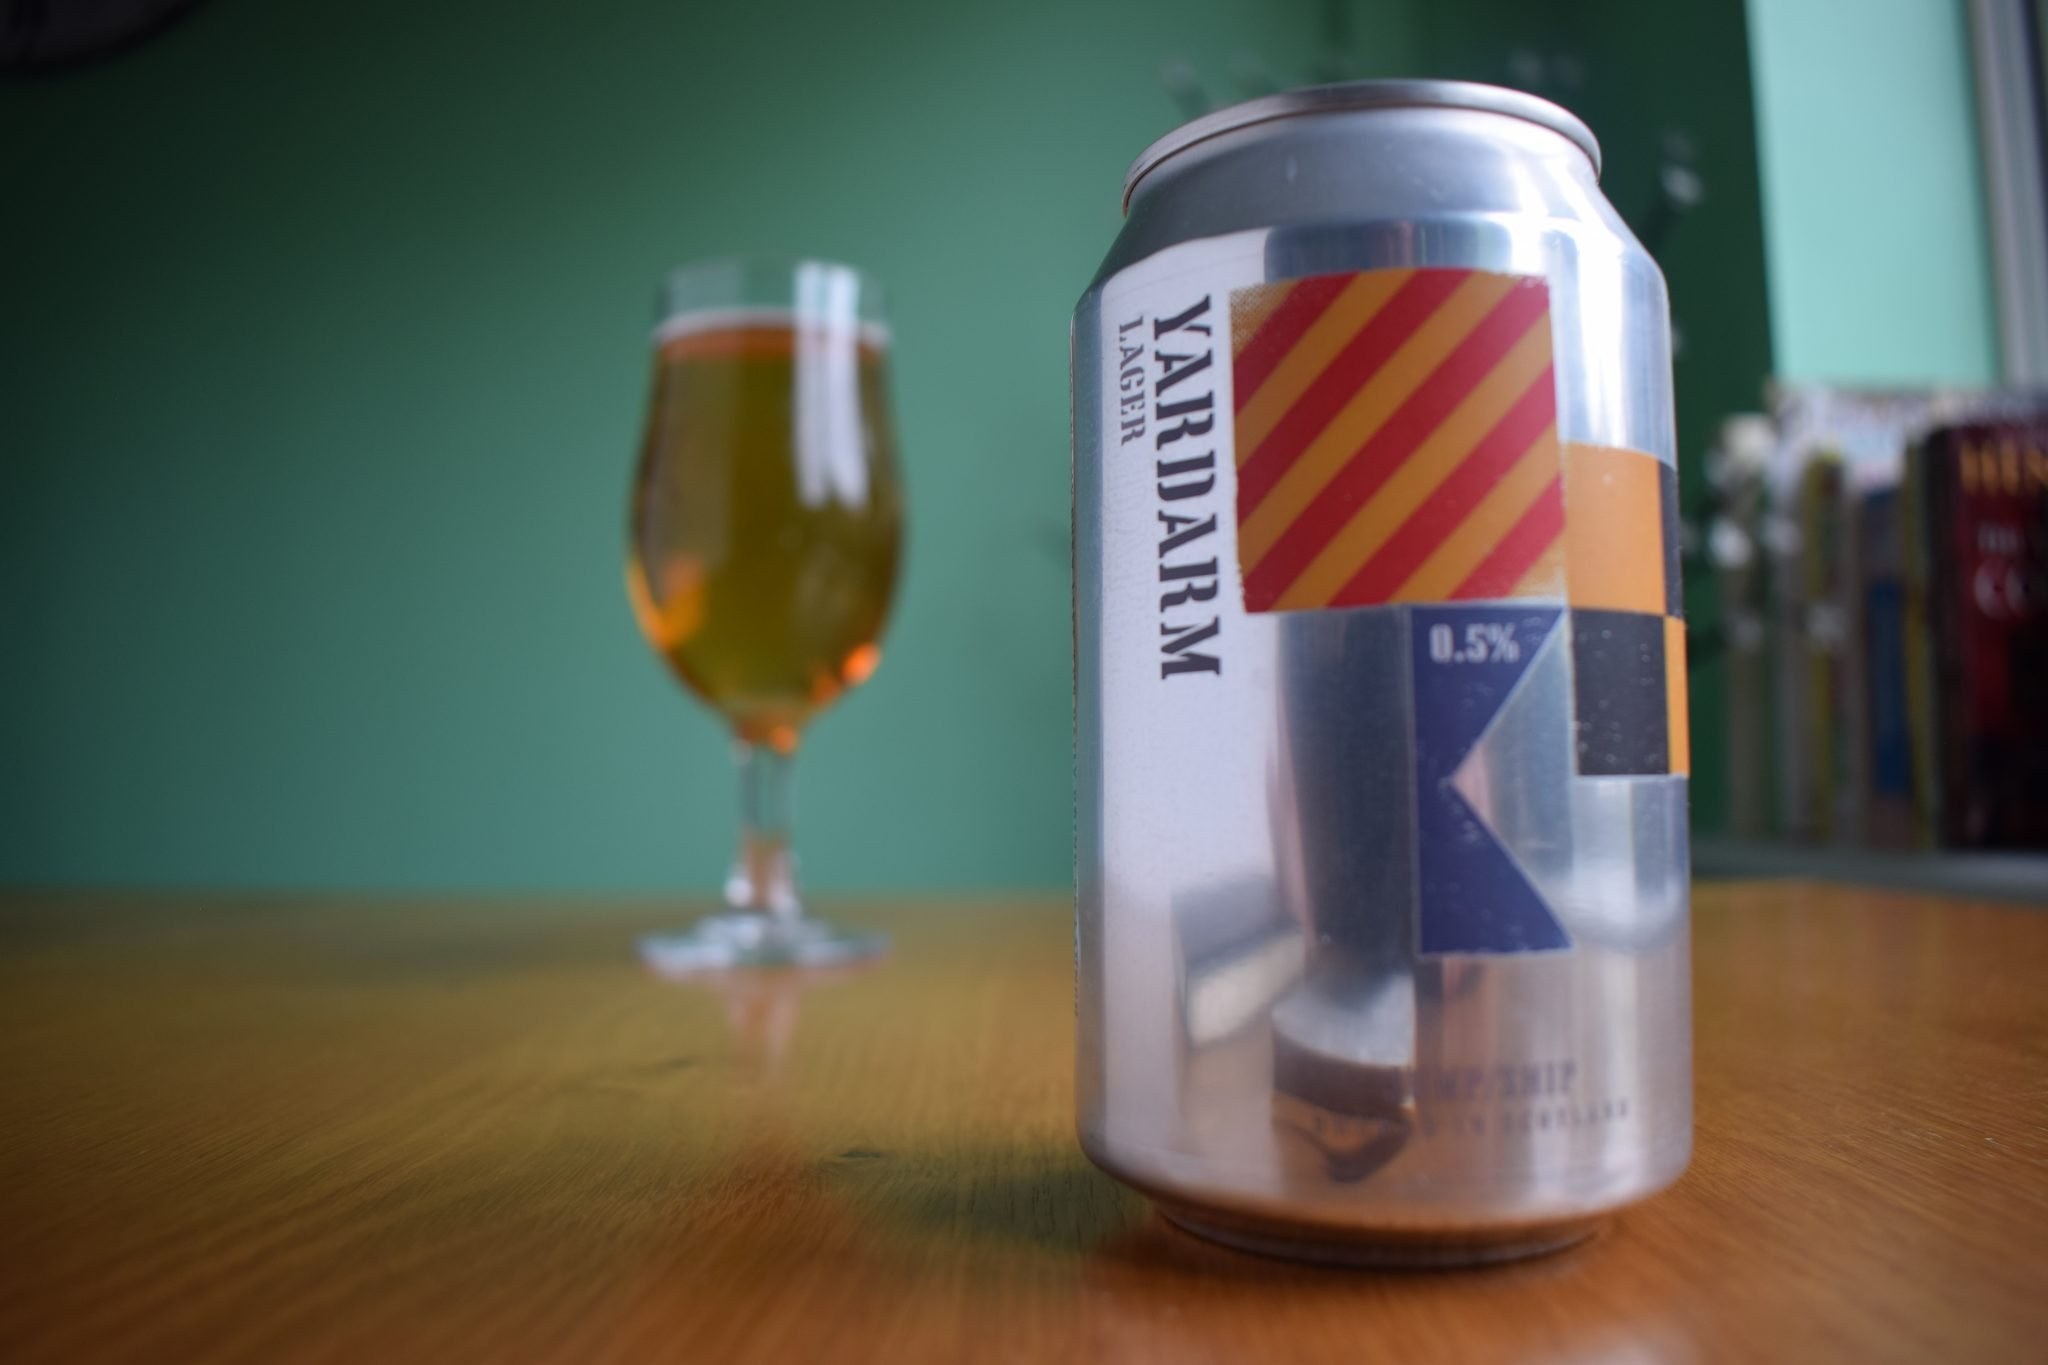 """Yardarm"" (0.5%) by Jump Ship Brewing"